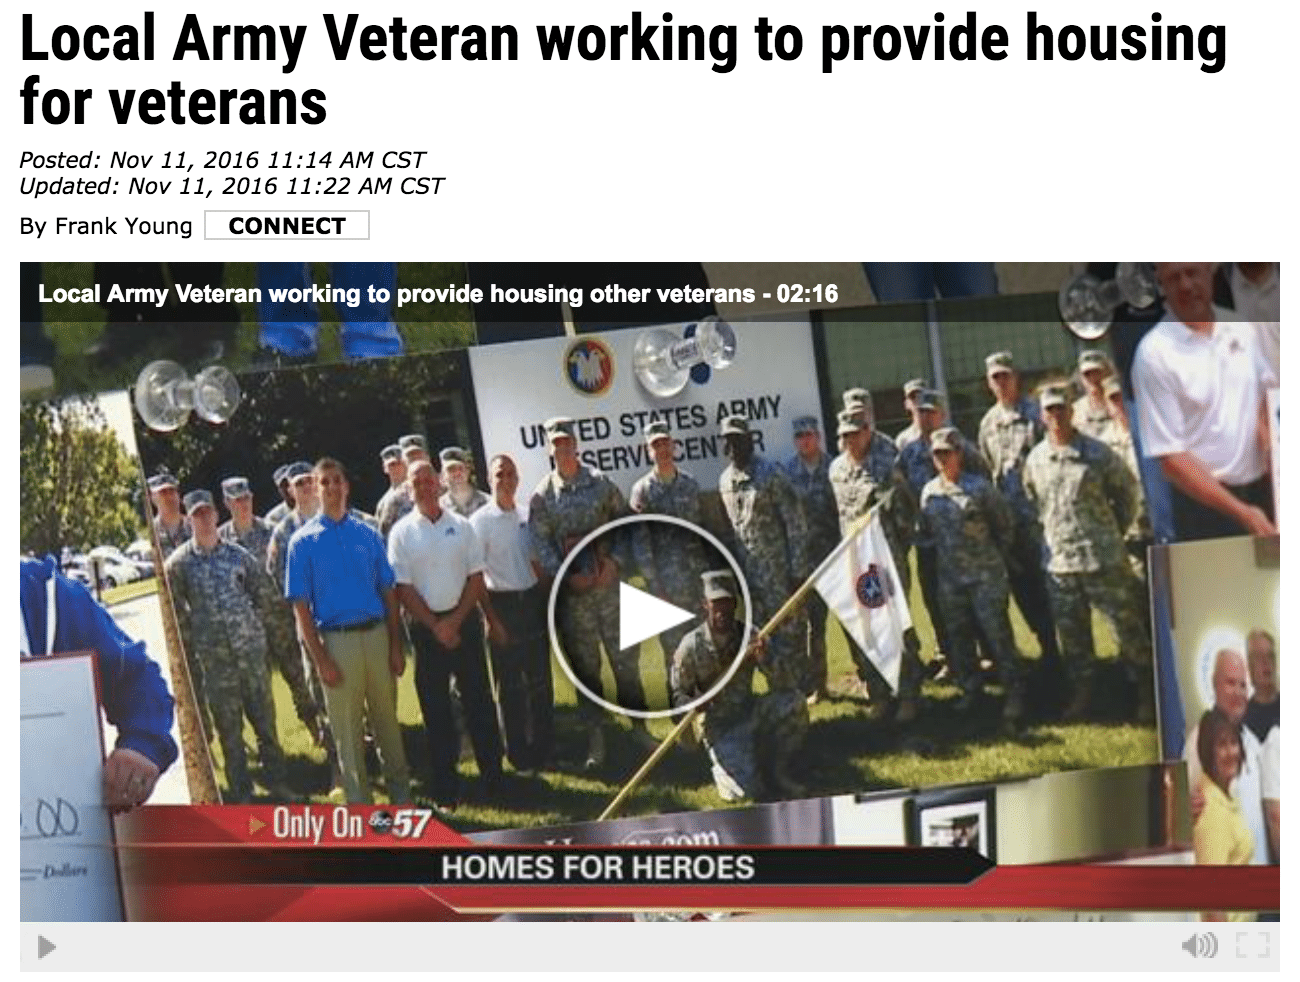 Jim McKinnies on Veterans Day, Homes for Heroes